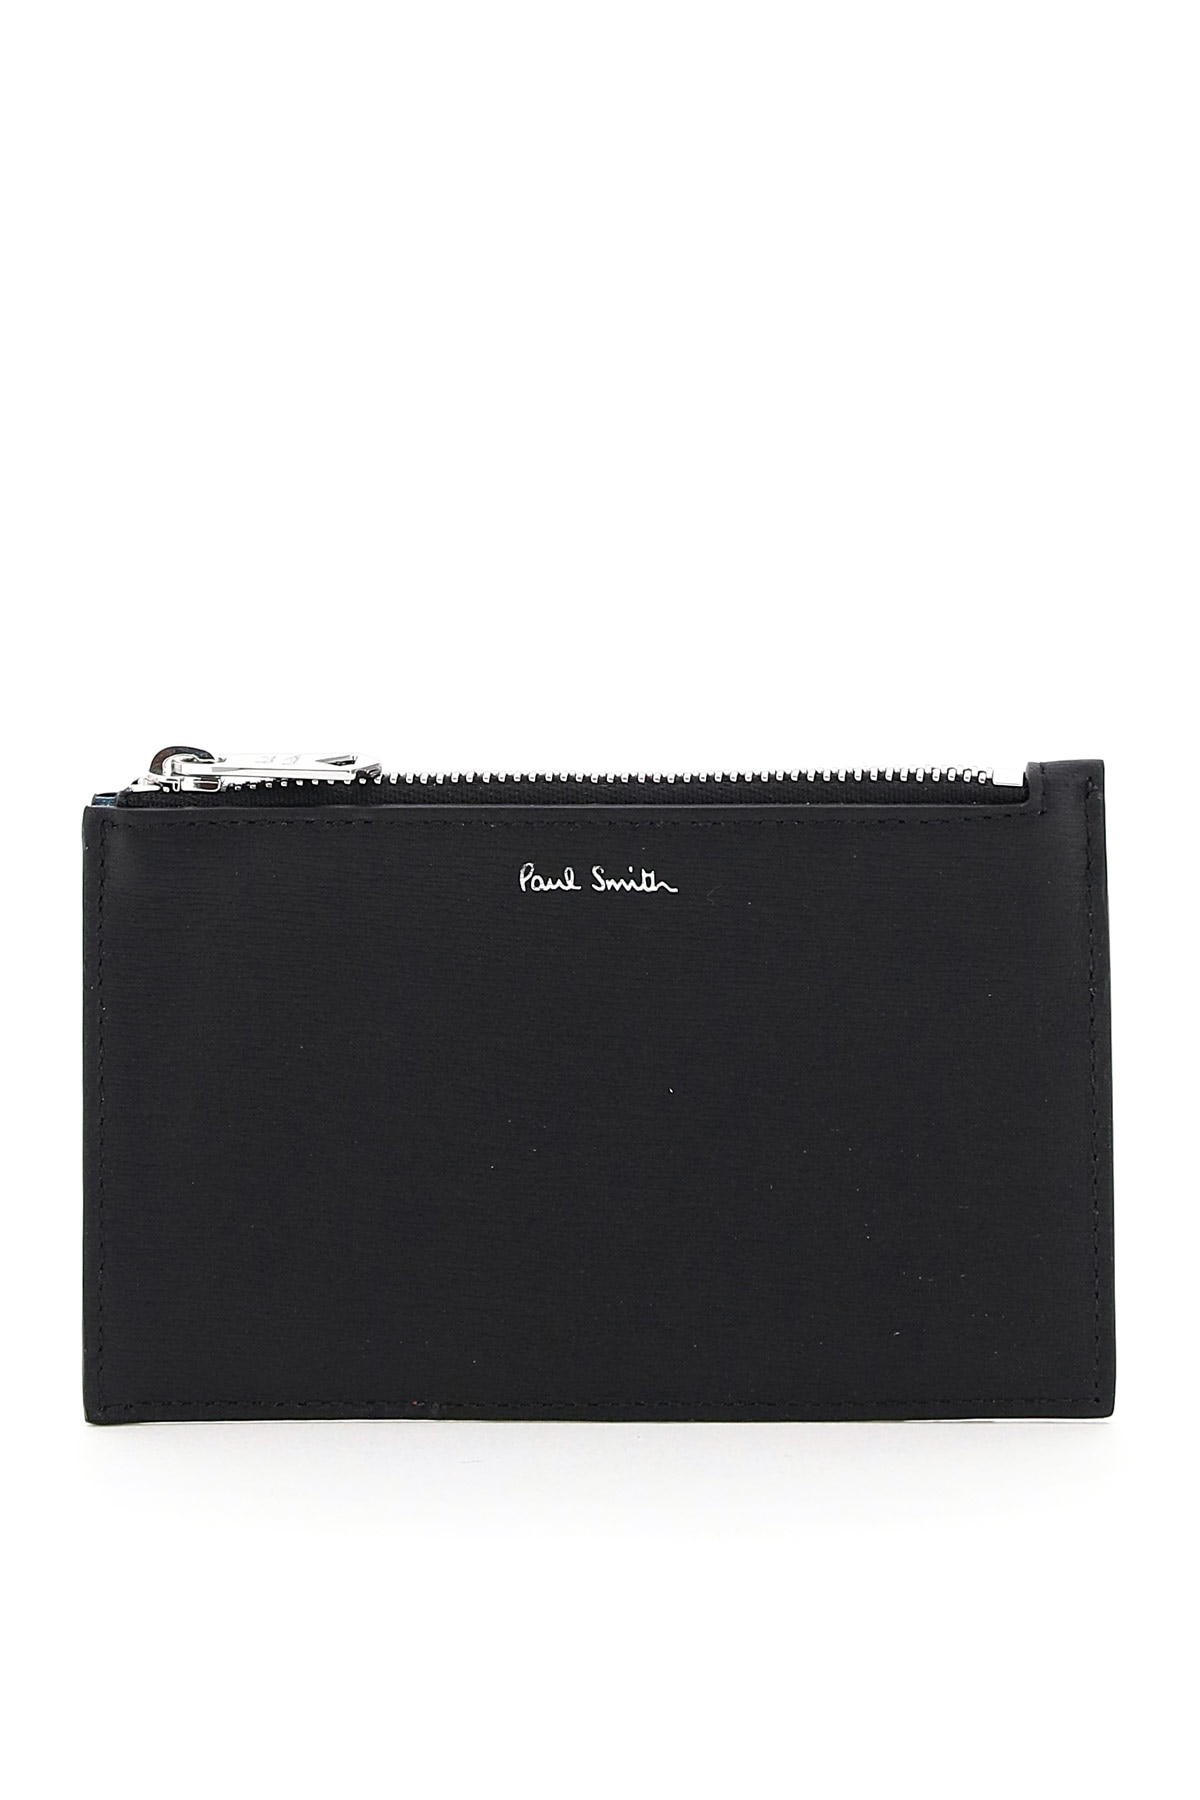 PAUL SMITH MULTICOLOUR BRIGHT STRIPE CARD HOLDER POUCH OS Black, Red, Grey Leather